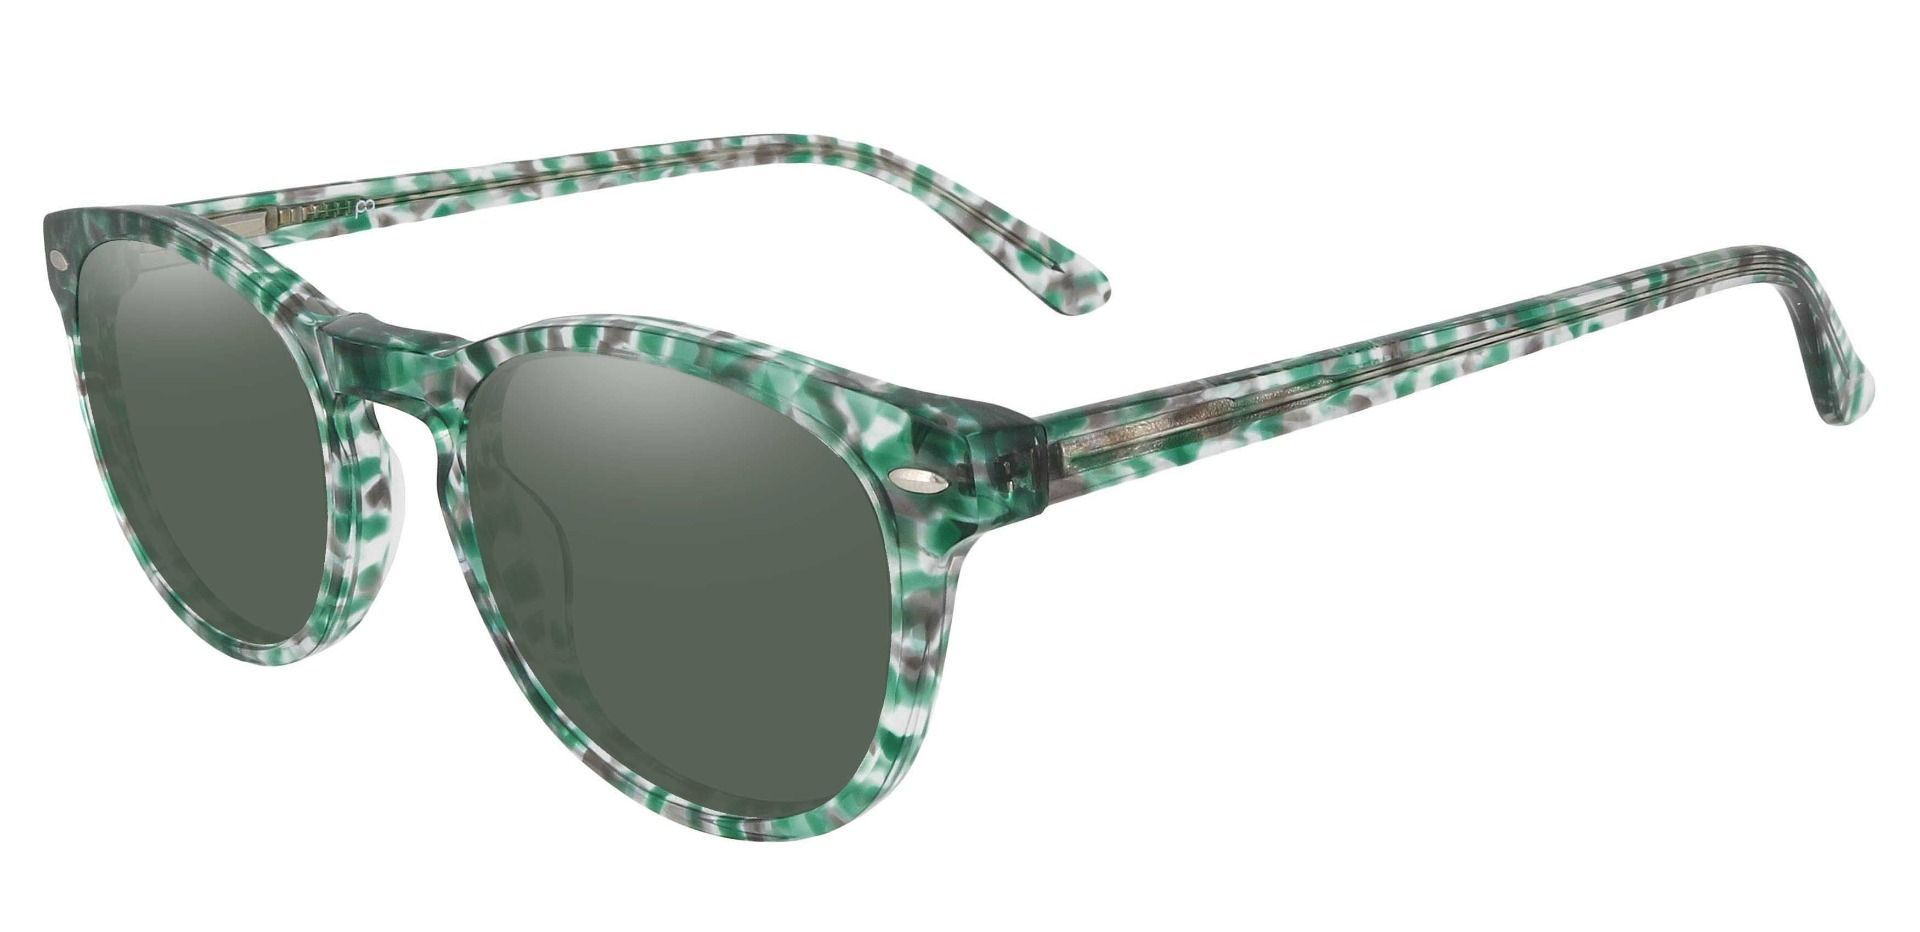 Laguna Oval Lined Bifocal Sunglasses - Green Frame With Green Lenses